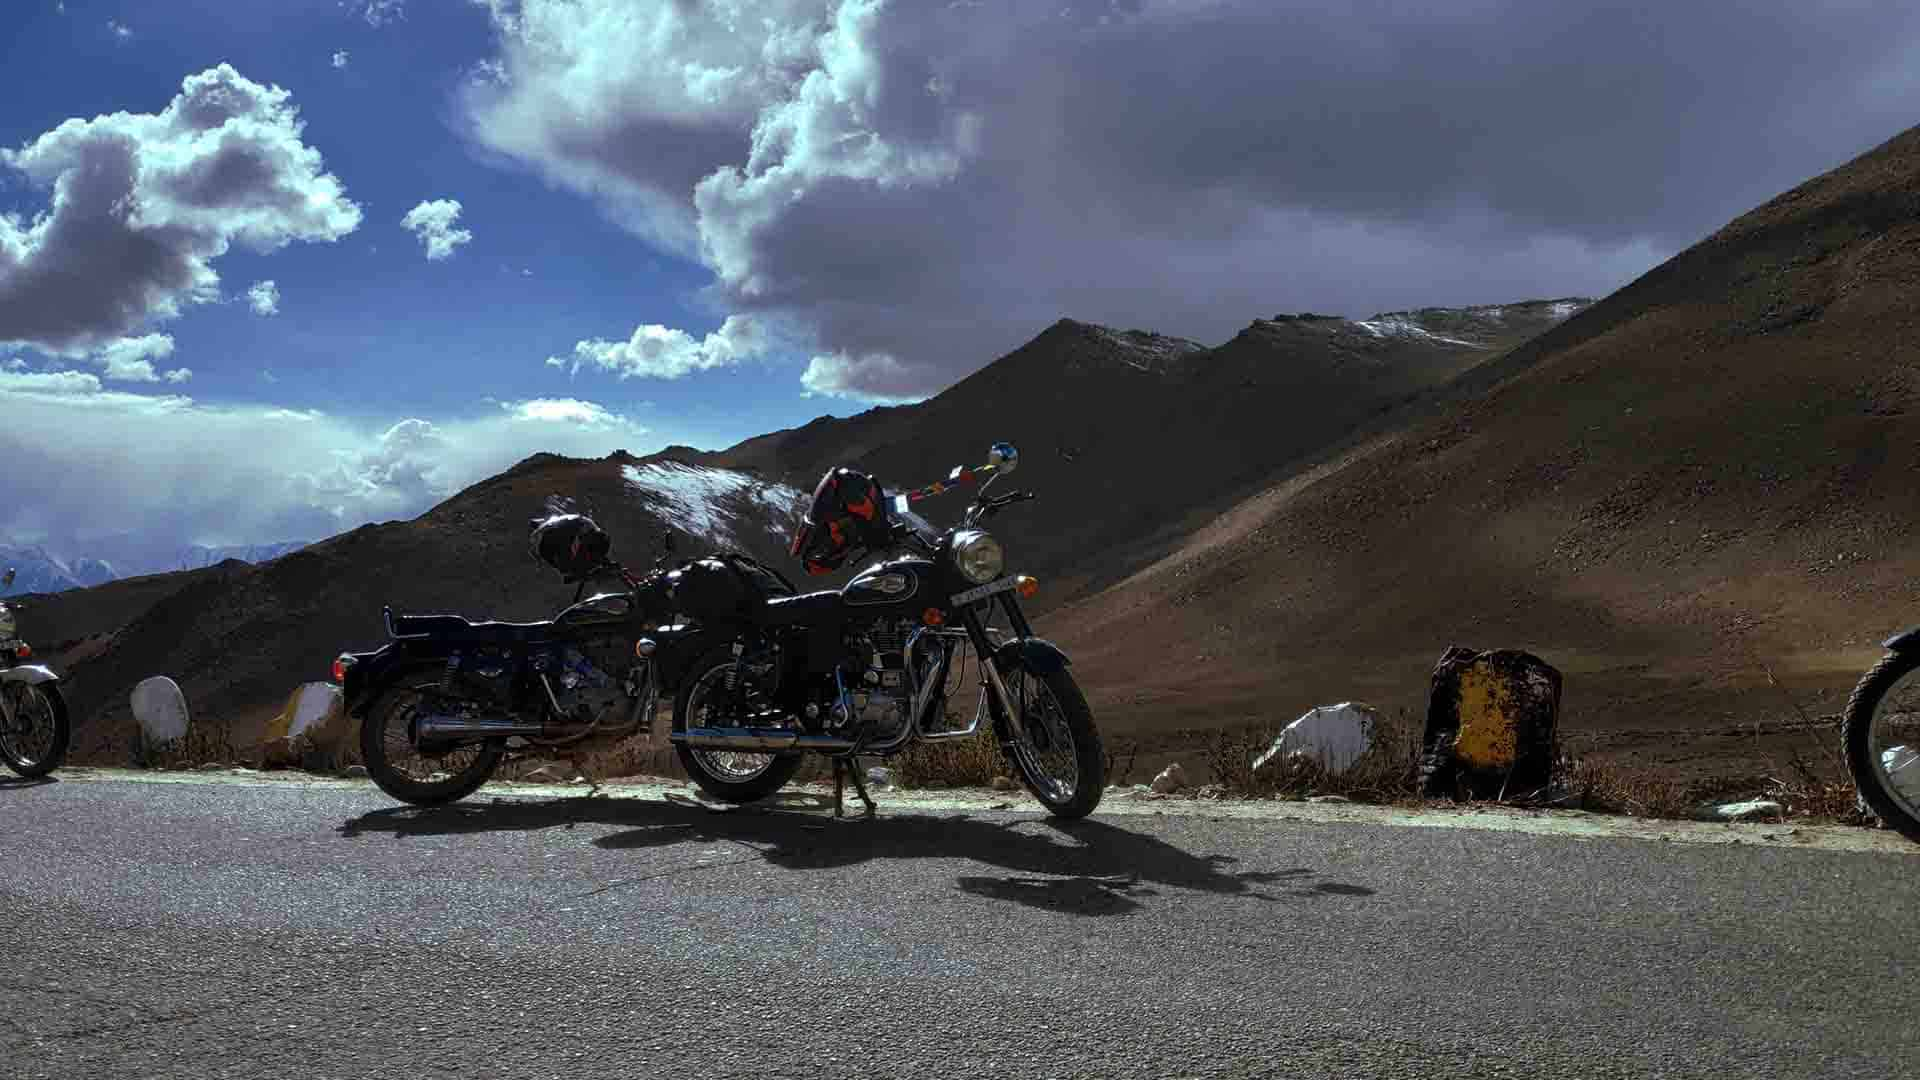 Motorcycle-tours-in-himalayas-ladakh-india